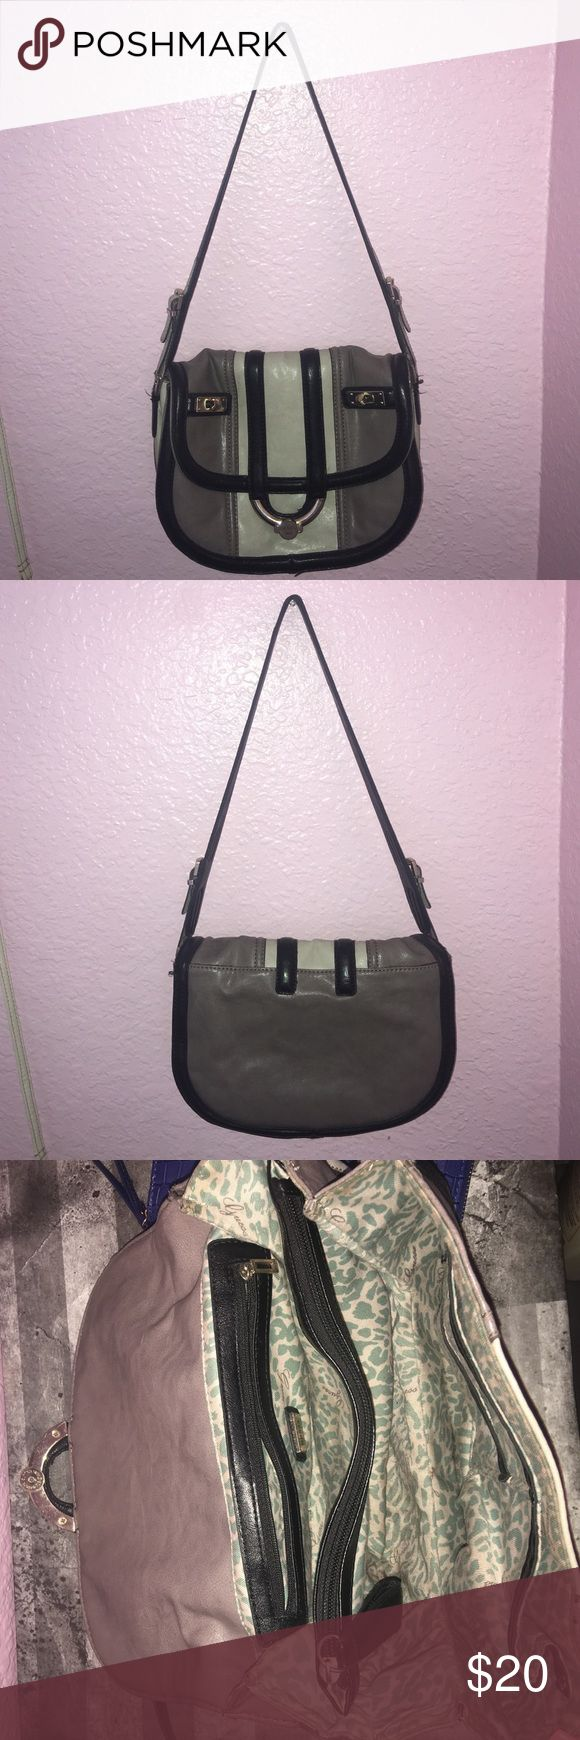 Guess bag Cute. I actually really like this bag but I don't get much use out of it so I'm deciding to sell it. Black/cream/cream grayish color. Make an offer. Guess Bags Shoulder Bags